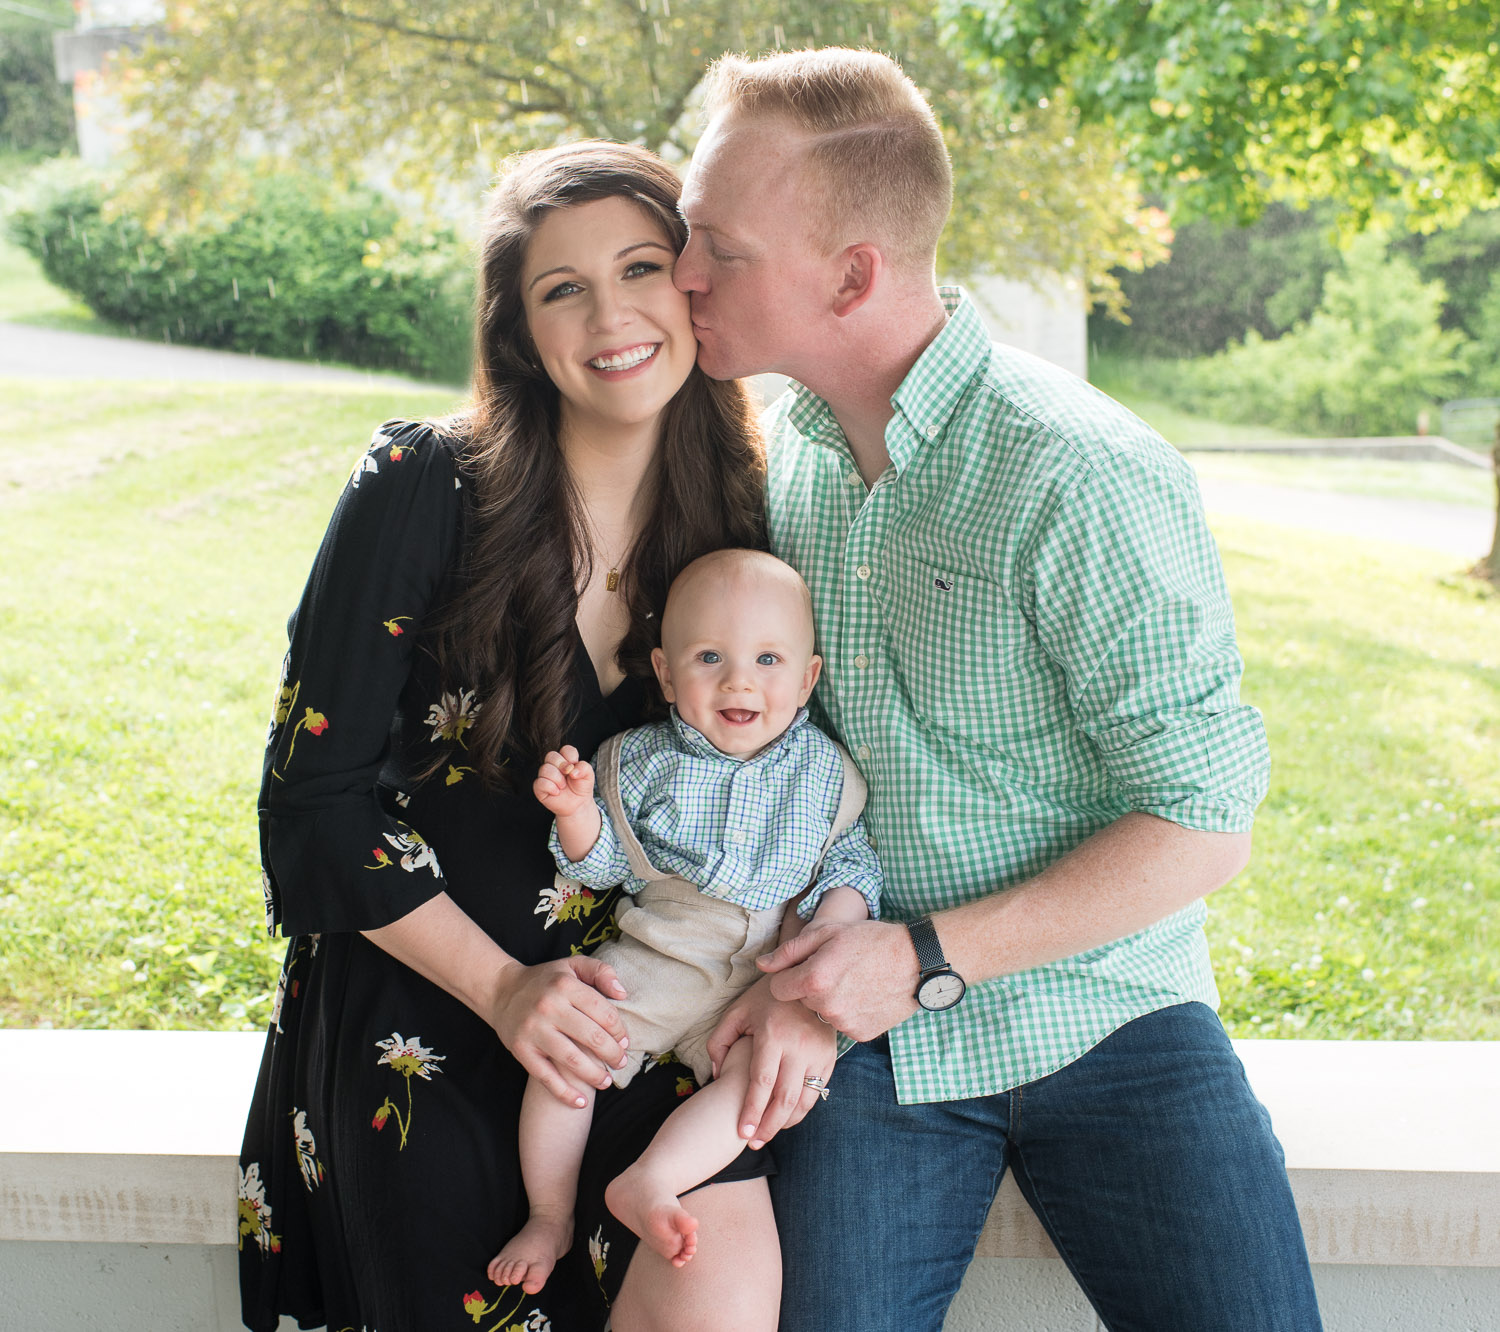 Outdoor Family Photographs - D. Phillips Photography - Fort Campbell Clarksville, TN - www.dphillipsphotography.com